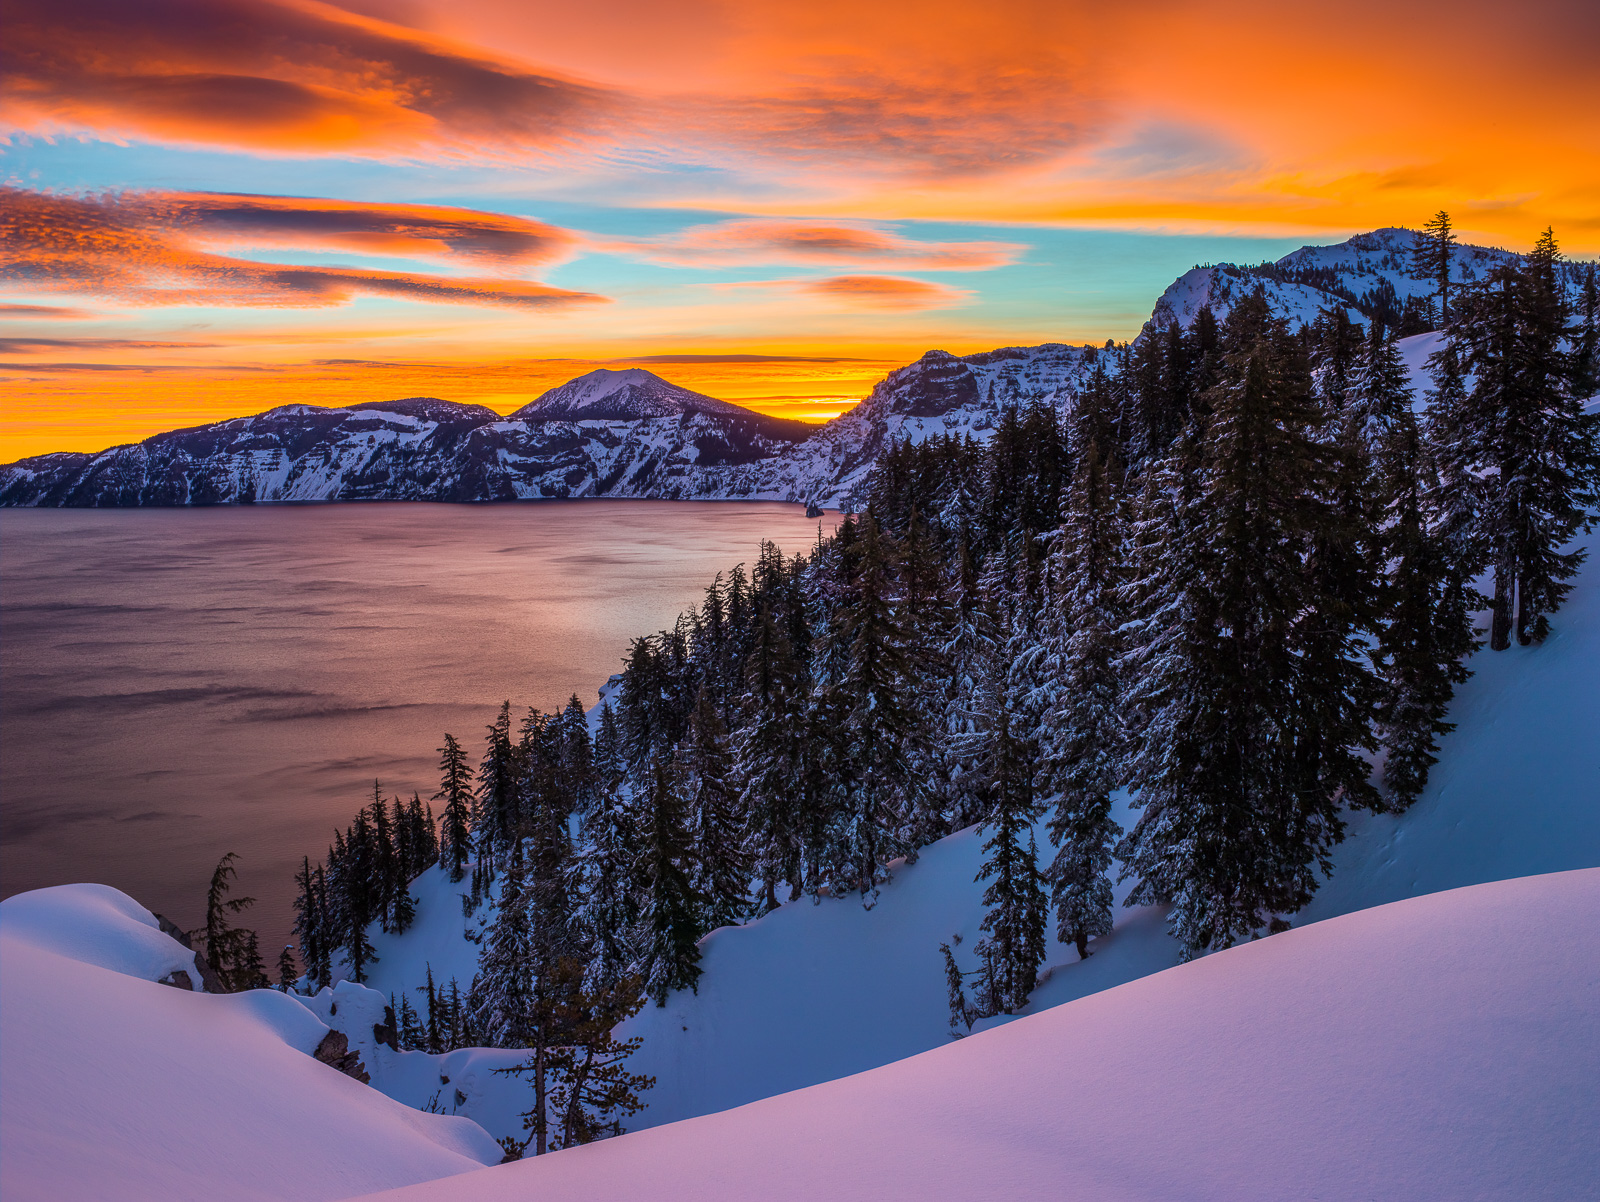 Crater Lake in Orange, Crater Lake National Park, Oregon, winter, snow, photo